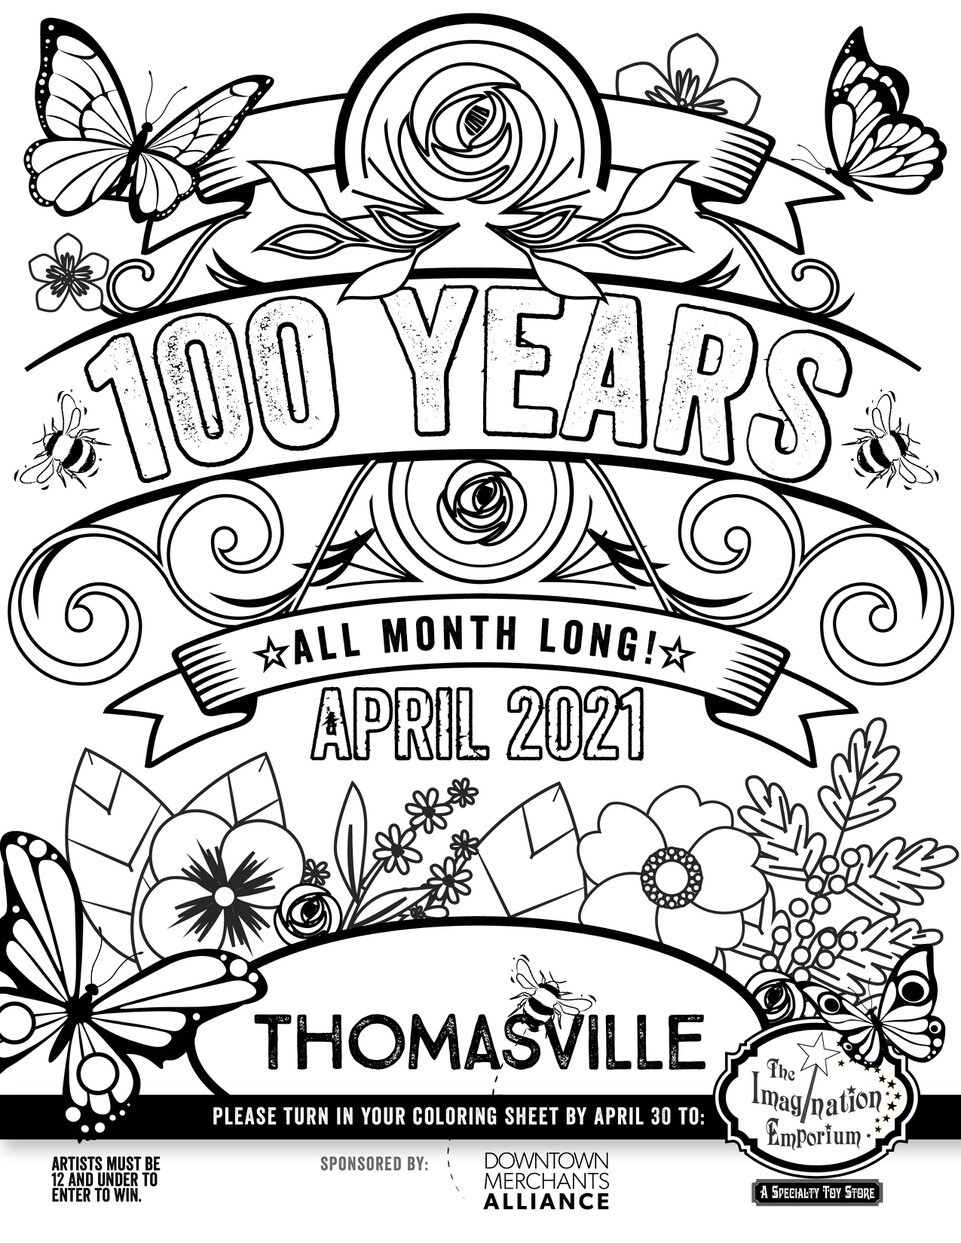 Downtown Thomasville Merchandise Alliance Coloring Contest